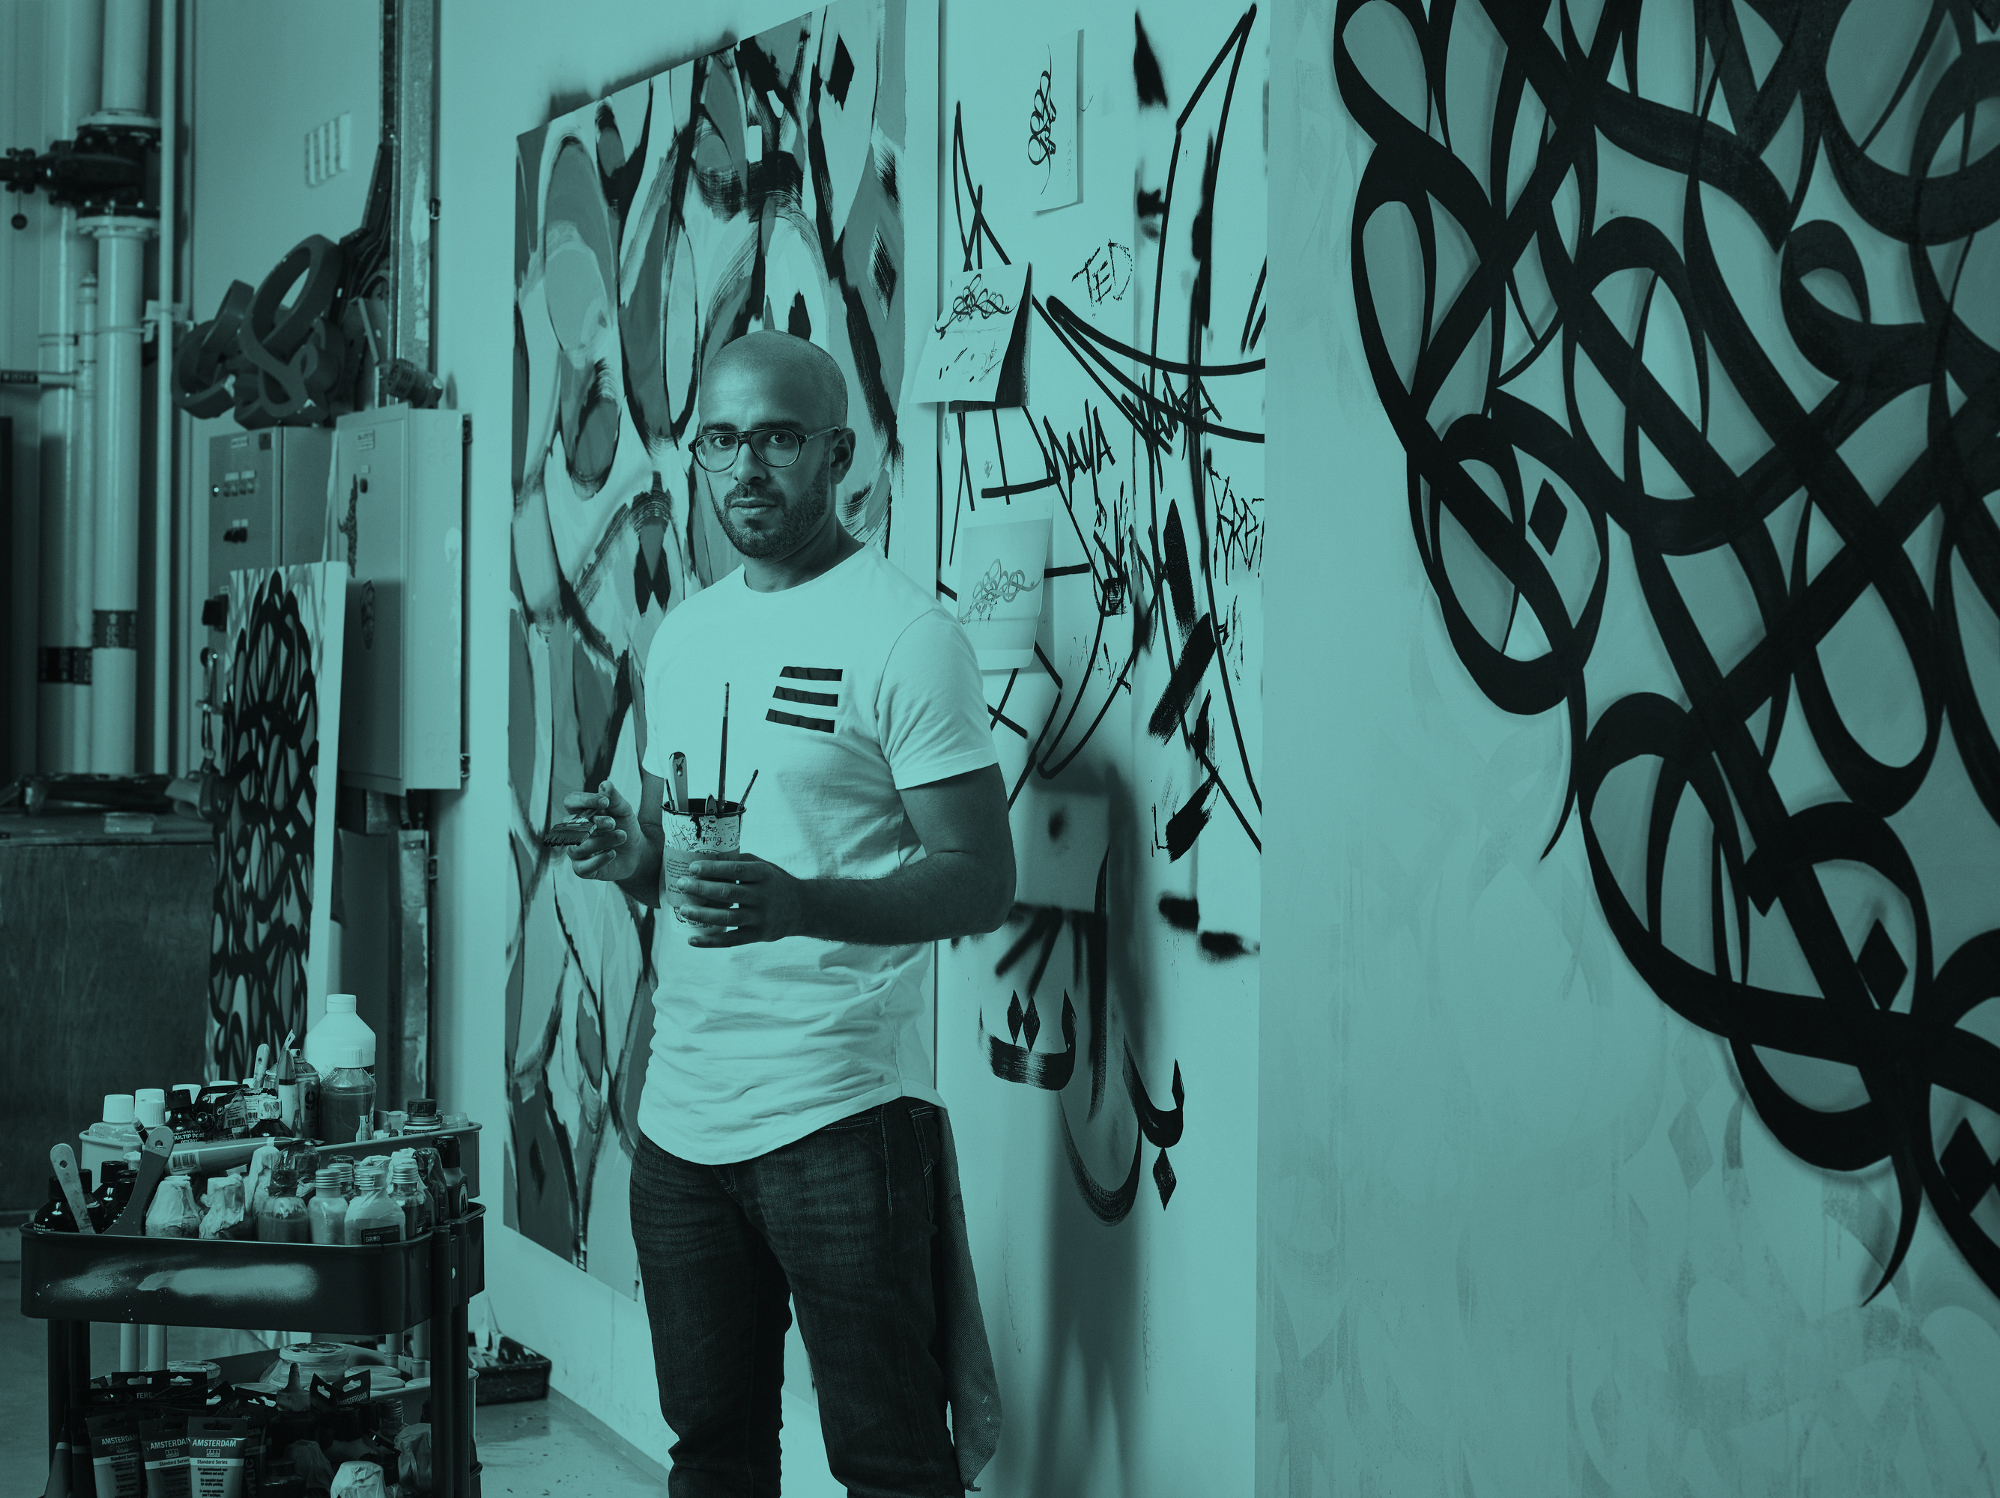 eL Seed - eL Seed is a French-Tunisian contemporary artist, working with Arabic script in 2 and 3 dimensions. He blends the historic art of Arabic calligraphy with graffiti to portray messages of beauty, poetry and peace across all continents. eL Seed is a 2014 TED Fellow, and a 2017 UNESCO Sharjah Prize for Arab Culture recipient.SEE WORK